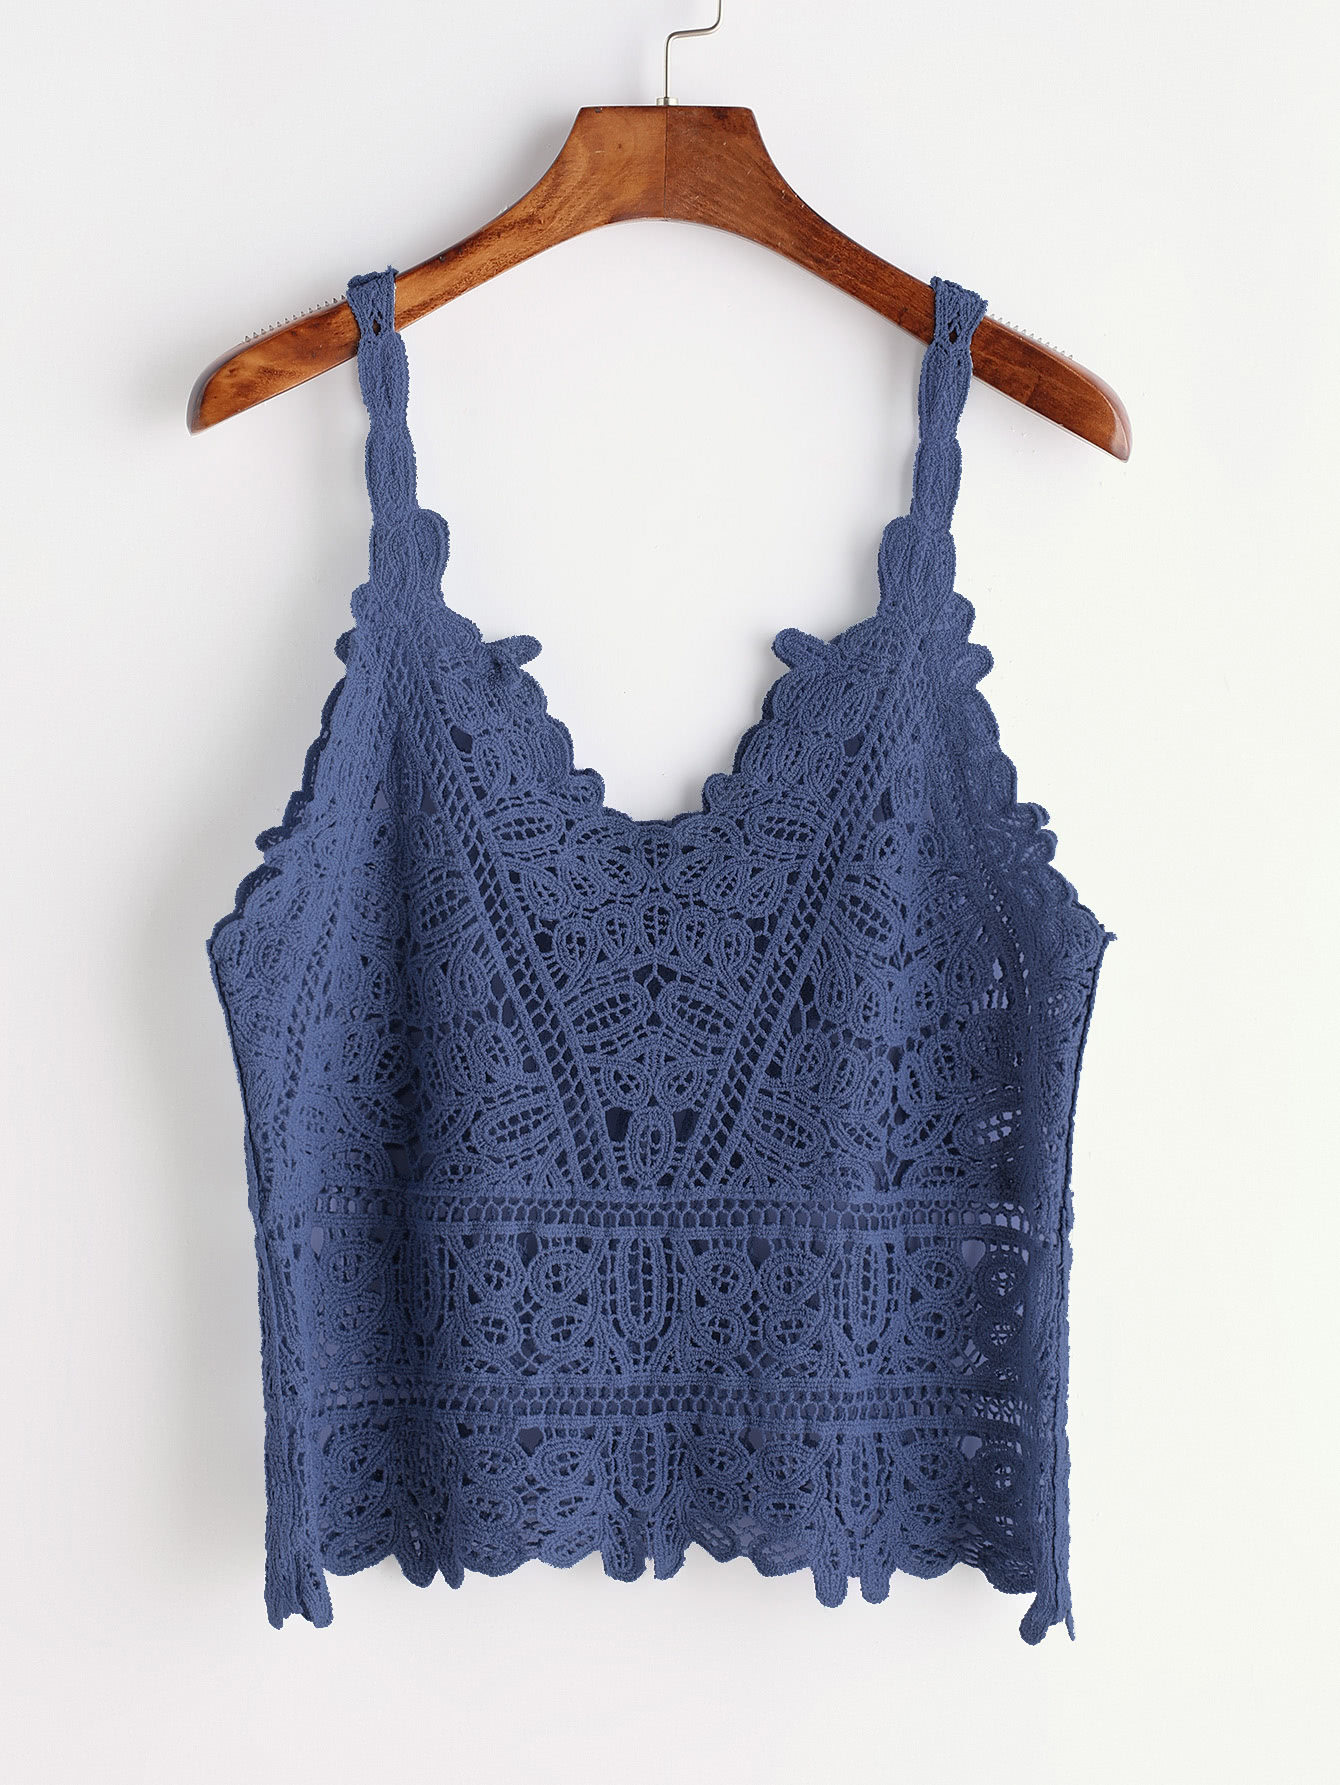 Hollow Out Crochet Lace Top Knittting Crochet